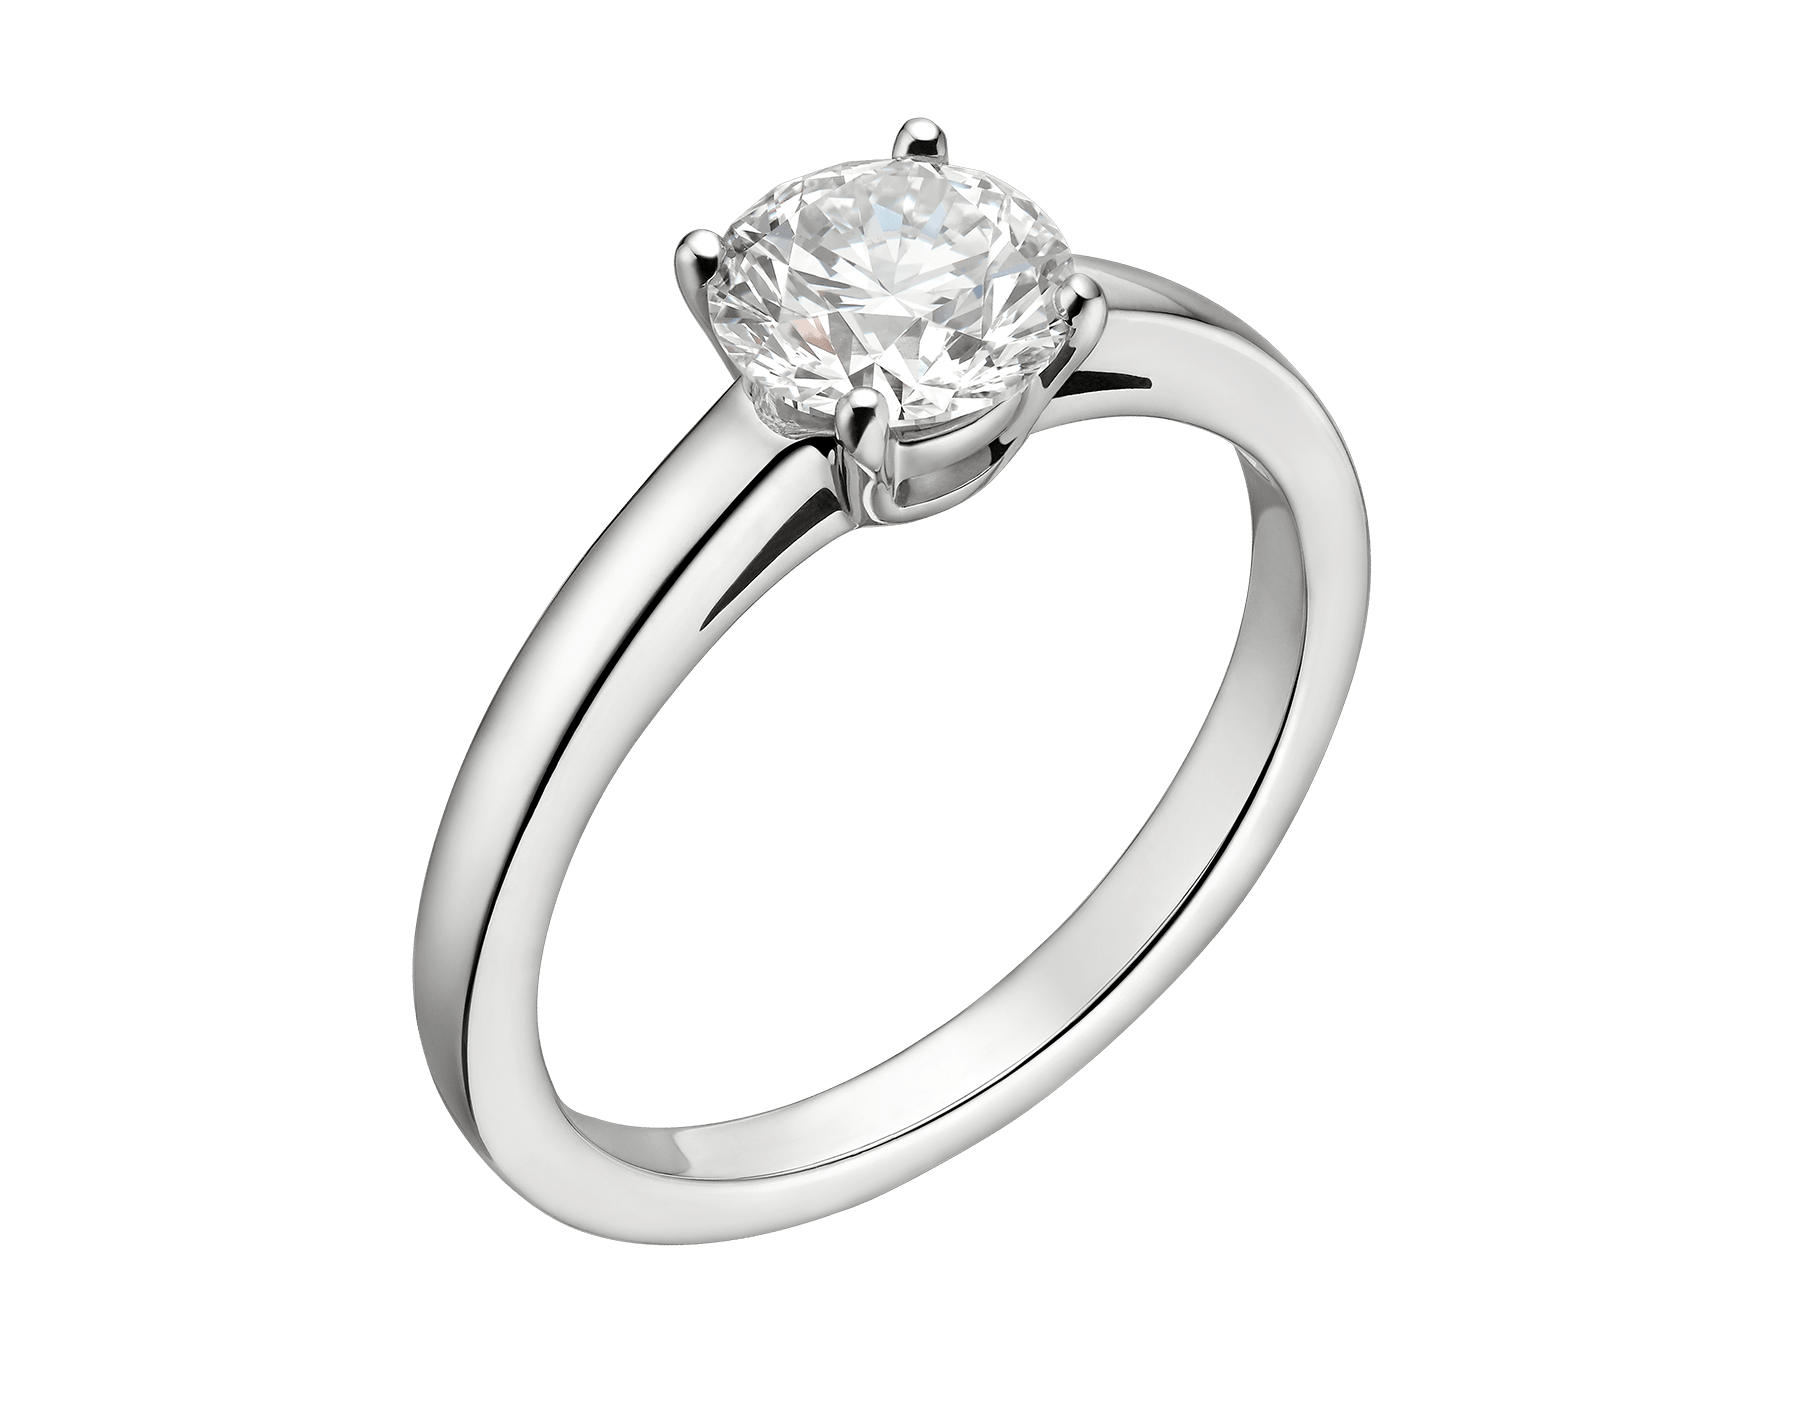 Griffe solitaire ring in platinum with round brilliant cut diamond AN201215 image 6